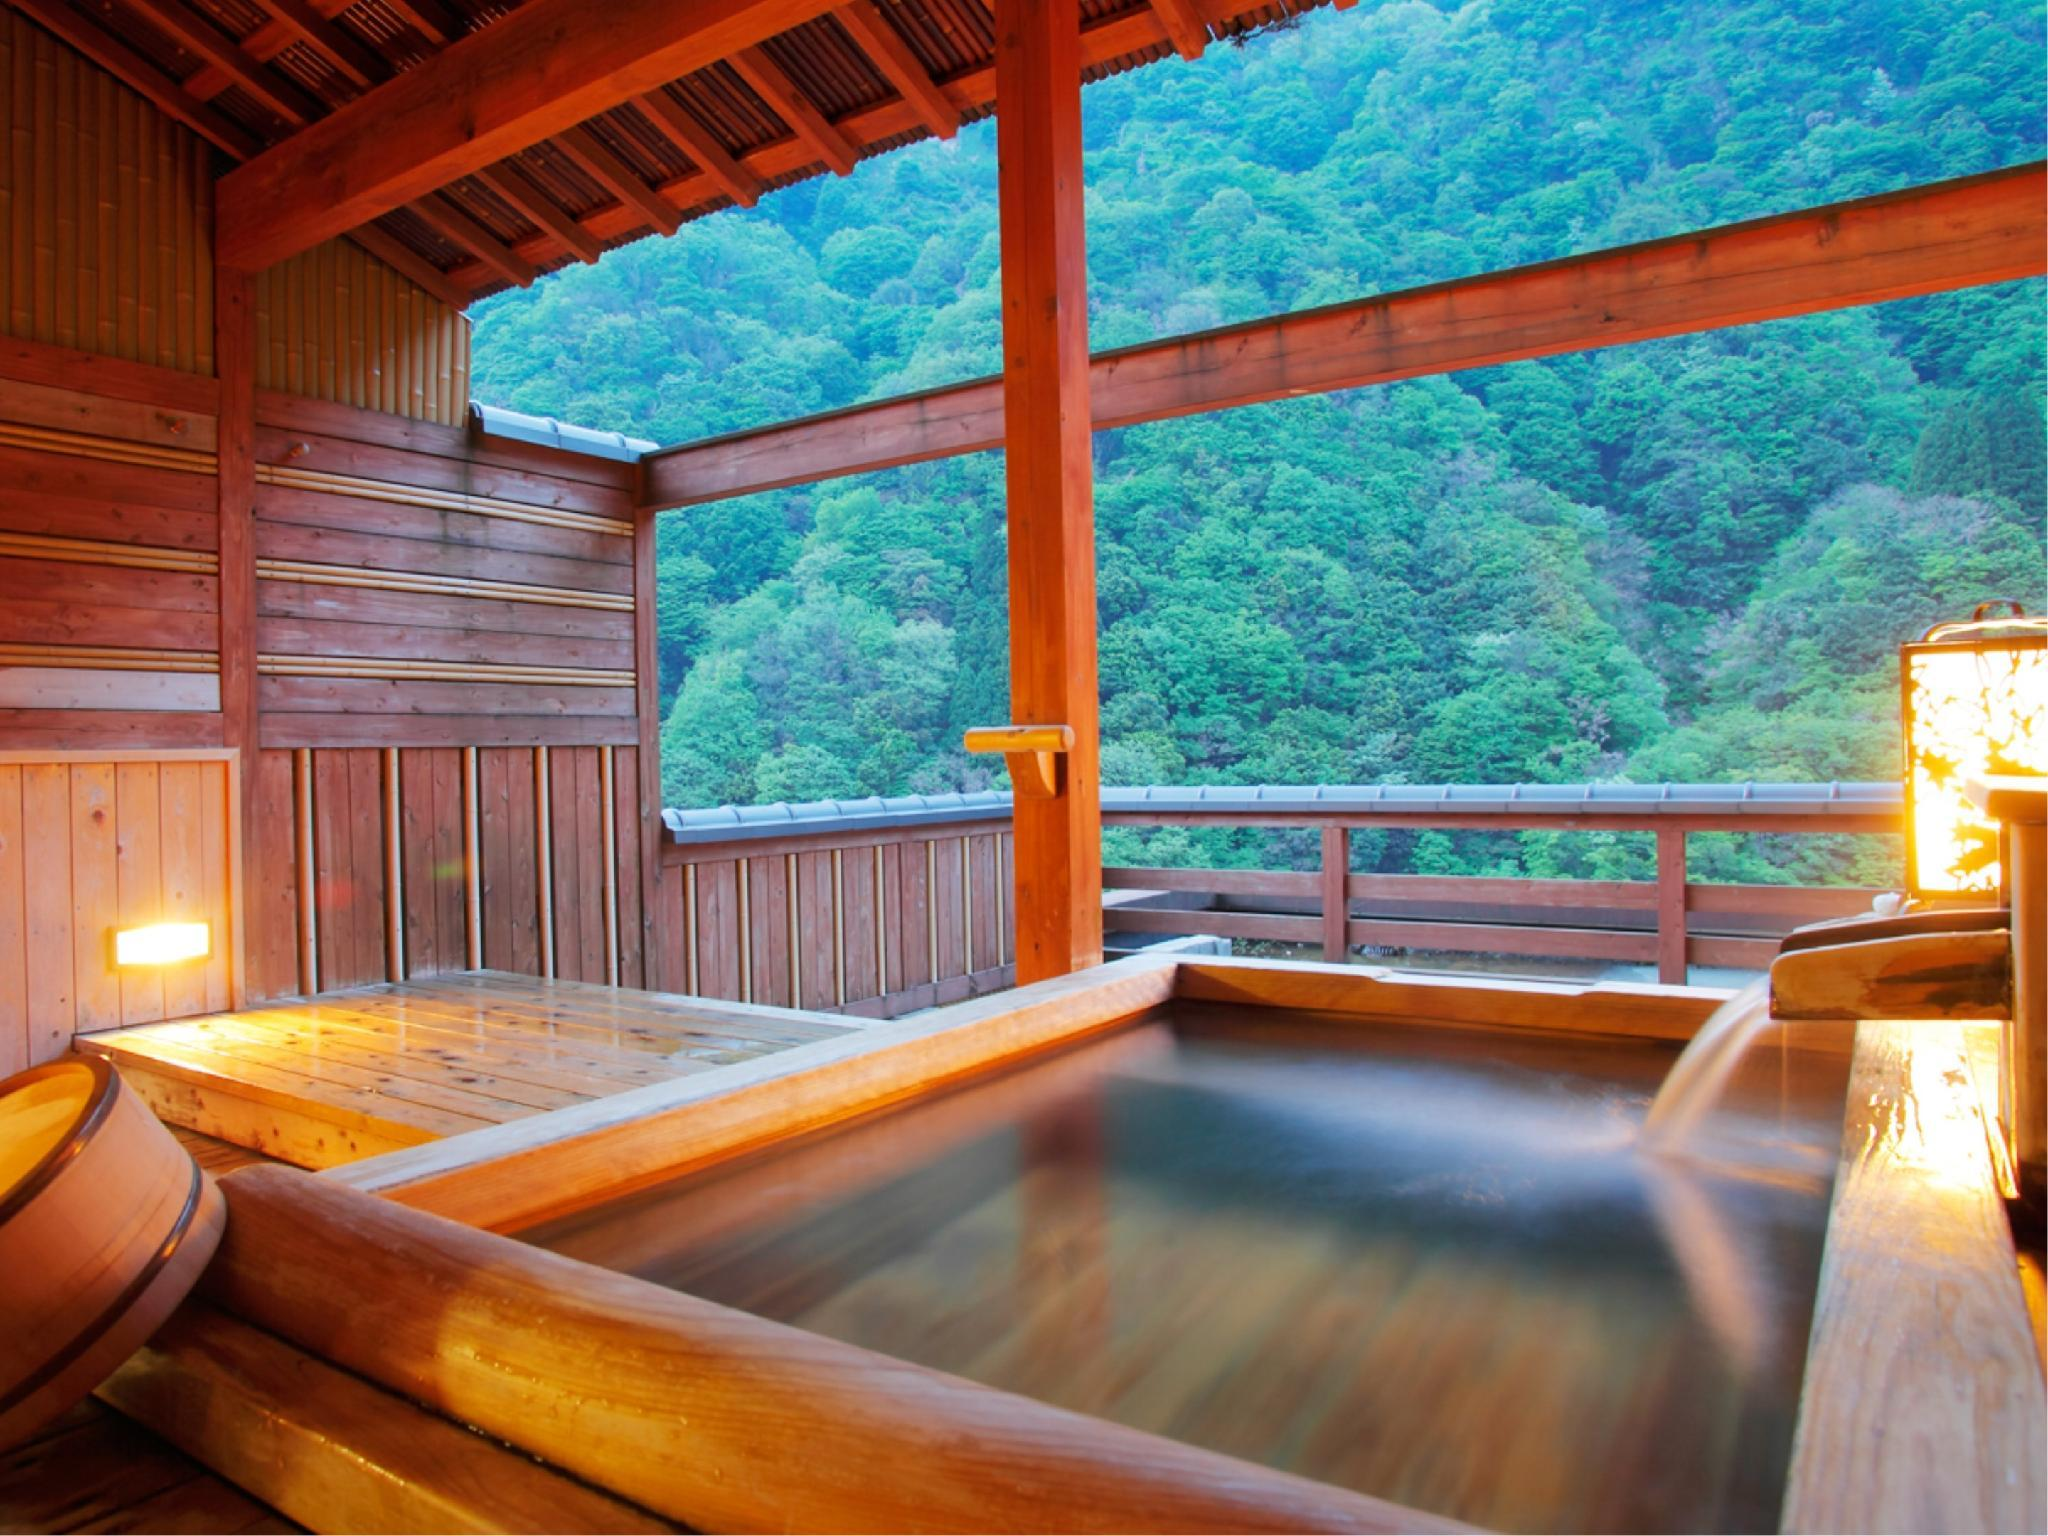 Japanese-style Room with Open-air Bath (Main Building) (Japanese-style Room with Open-air Cypress Bath (Main Building))